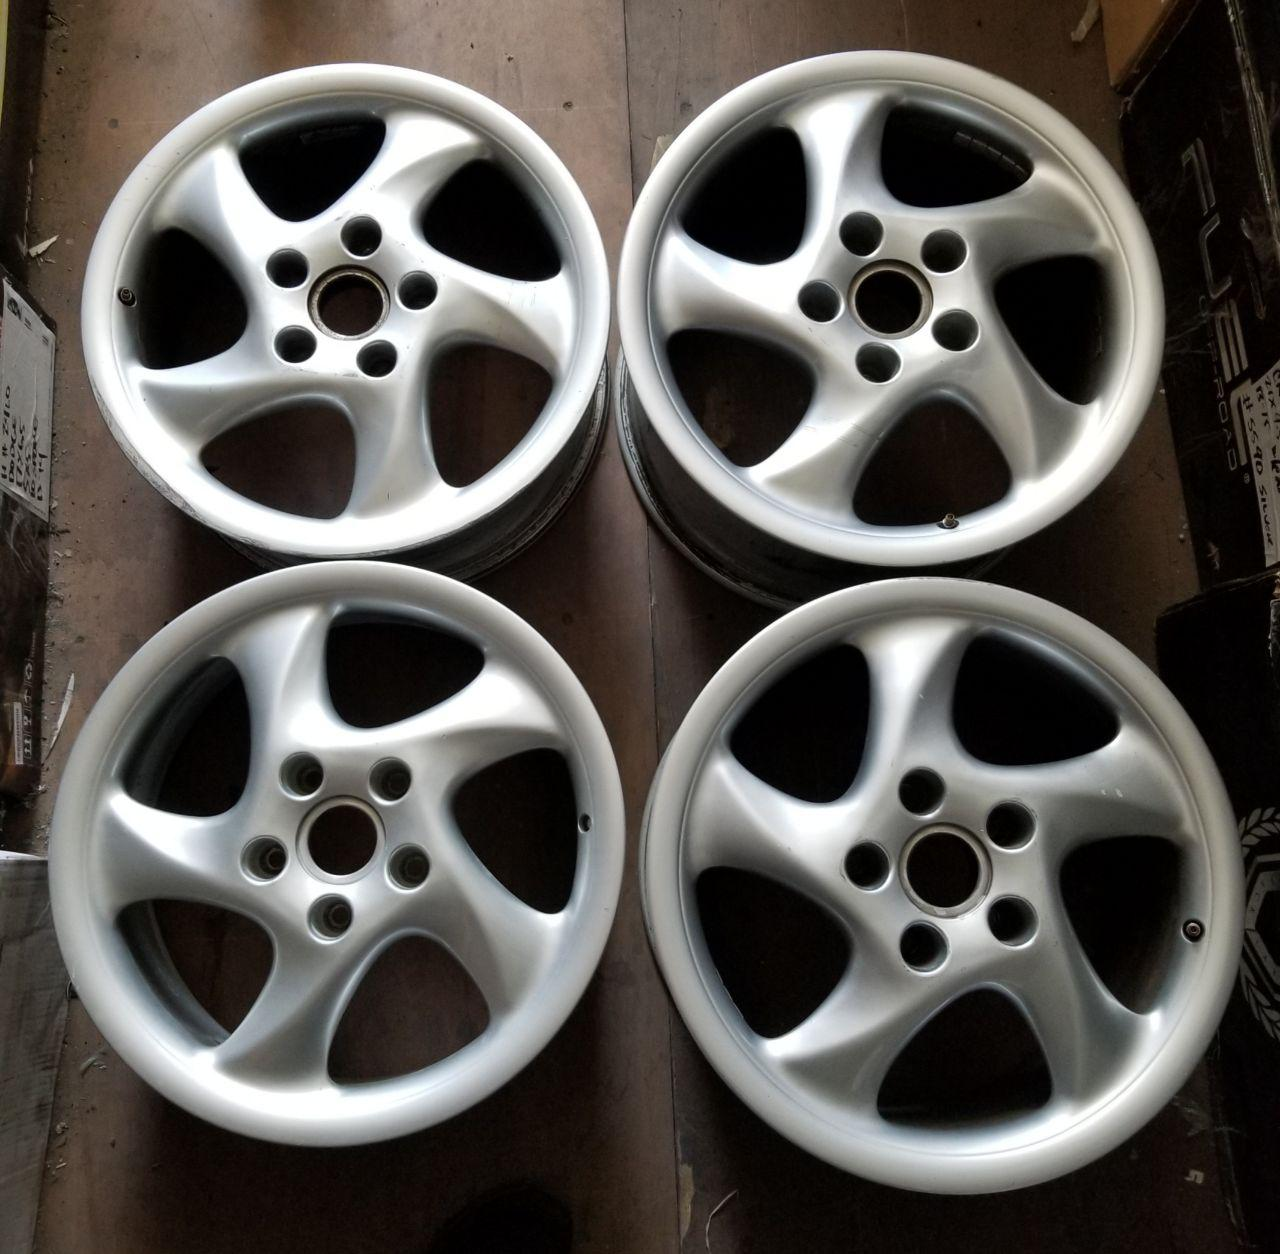 - OEM WHEELS - 1996-1998 PORSCHE 911 18x10 5 SPOKE Hollander #67229 /  USED